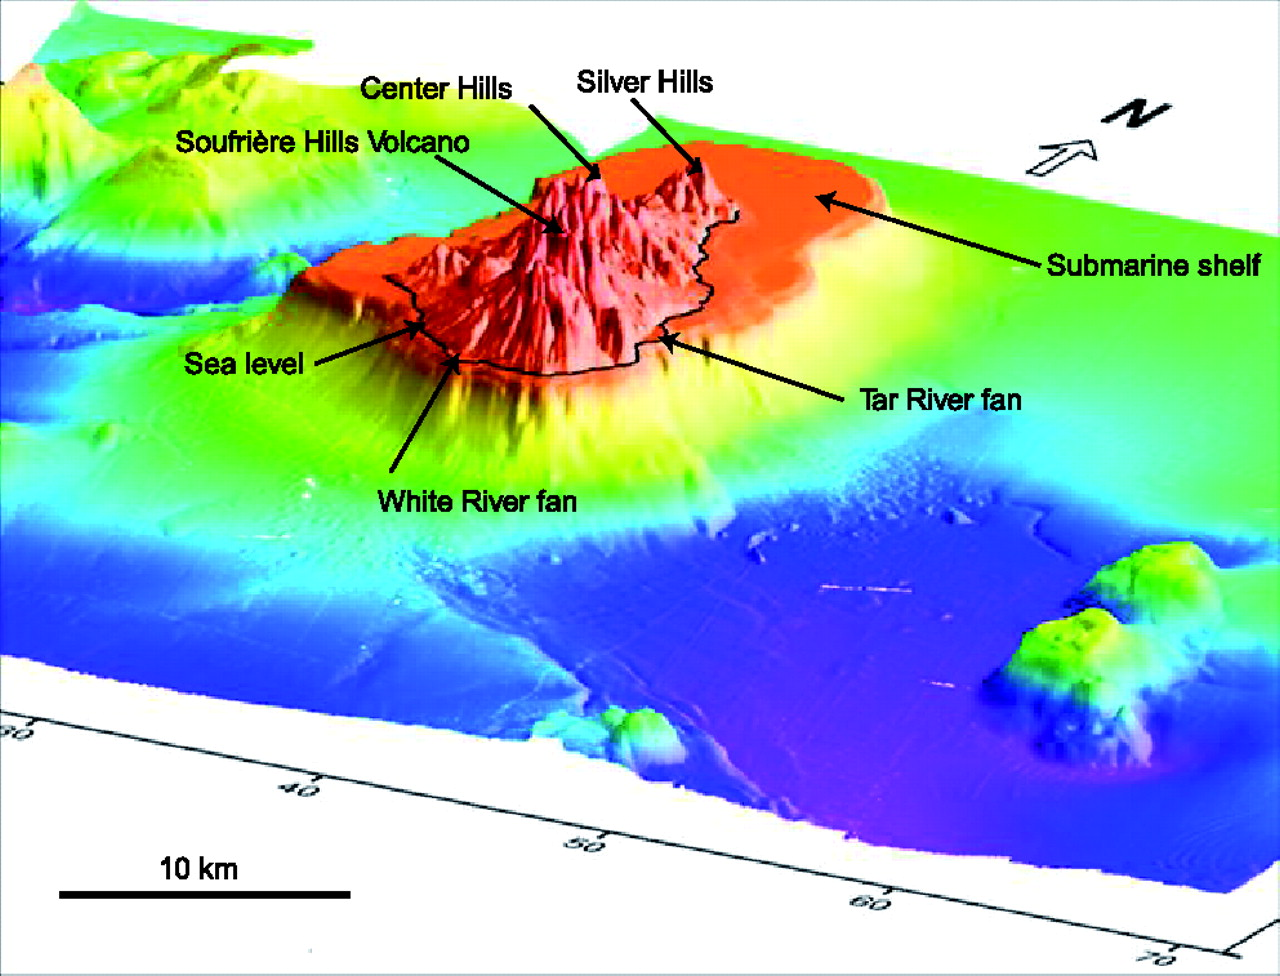 Submarine Deposition Of Volcaniclastic Material From The 19952005